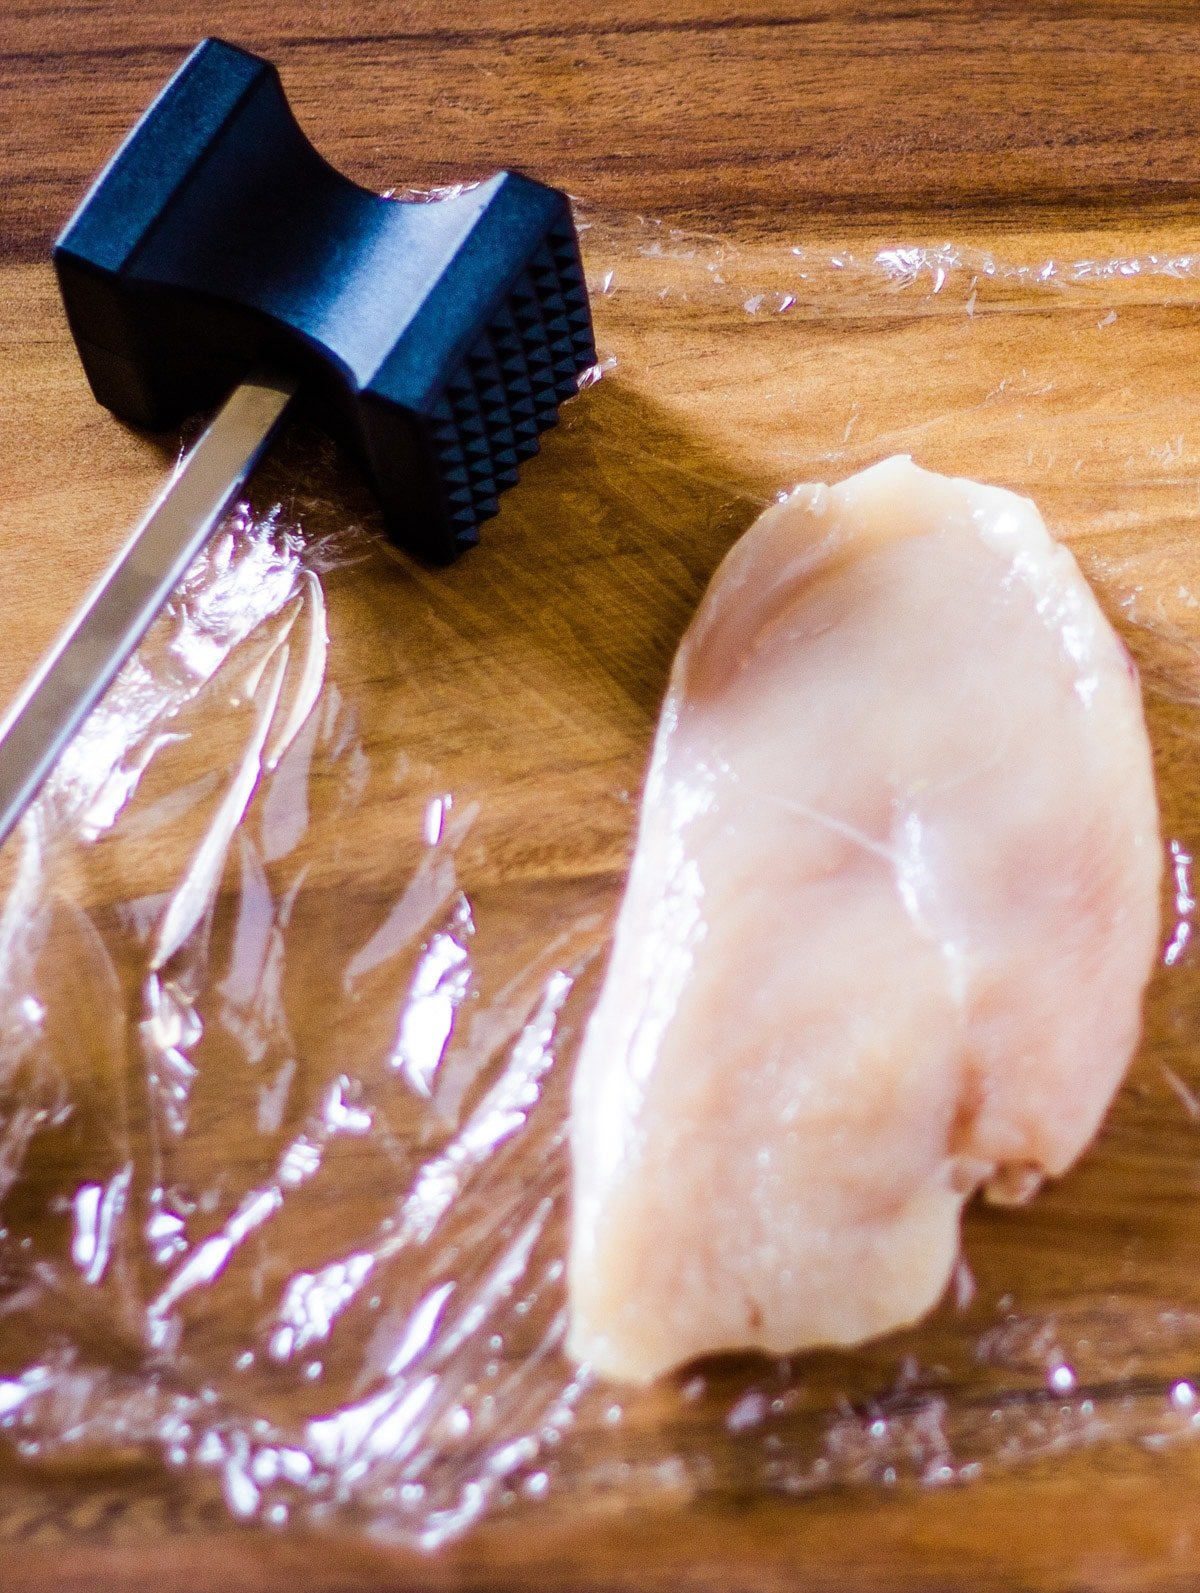 A chicken breast and a kitchen mallet on a wooden cutting board.